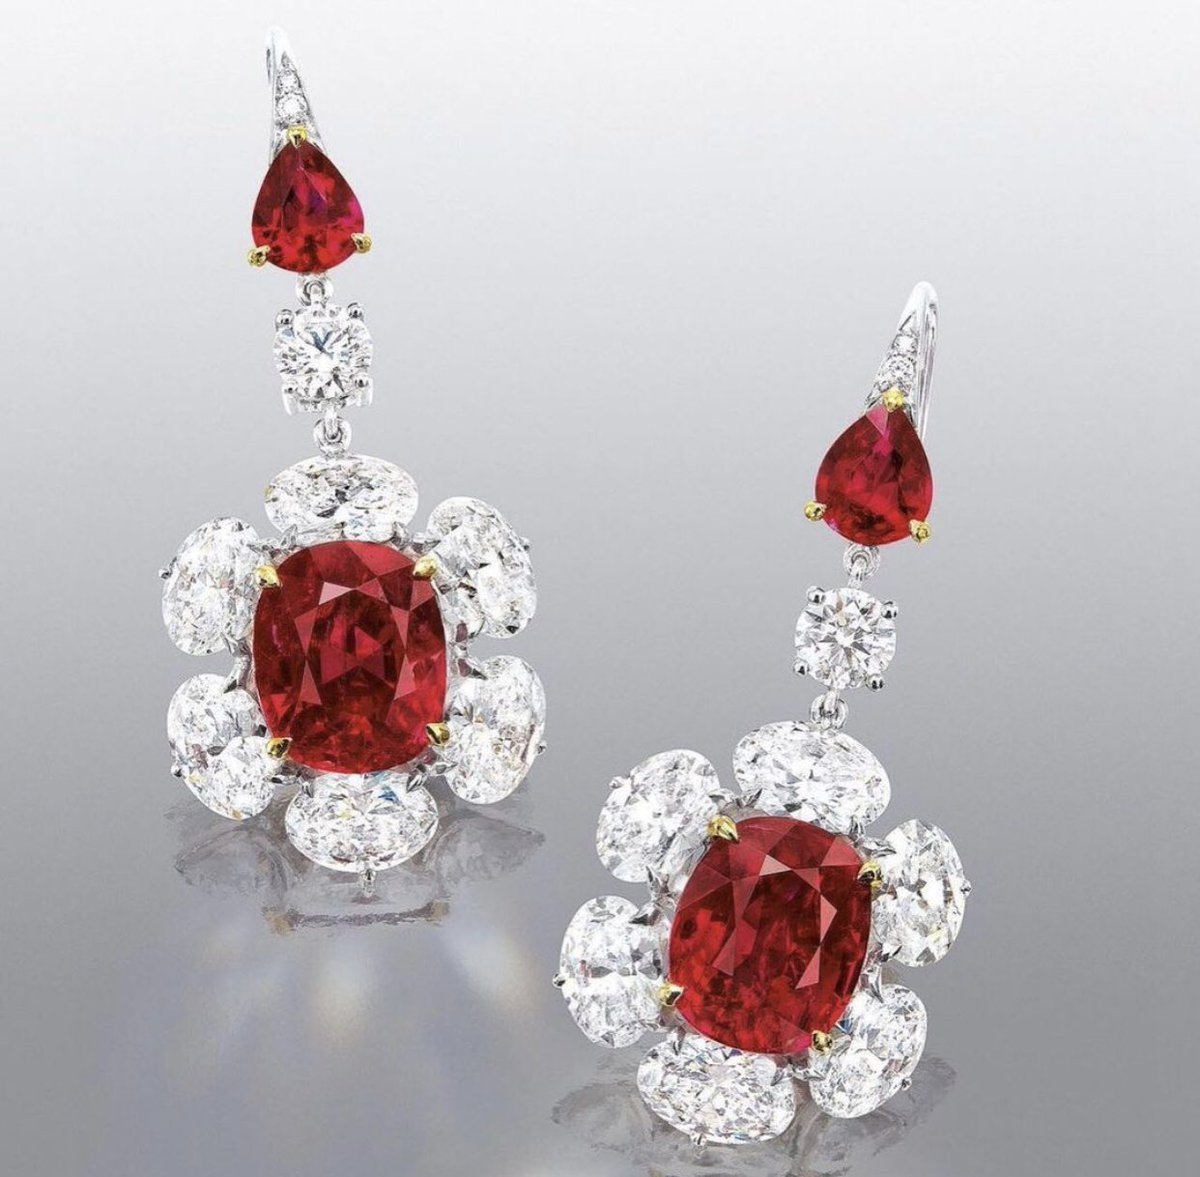 Natural Burmese Rubies with Such Vibrance and in Fairy Red Color! @phillipsauction  #red #rubies #phillipsauction #elegance #jewels